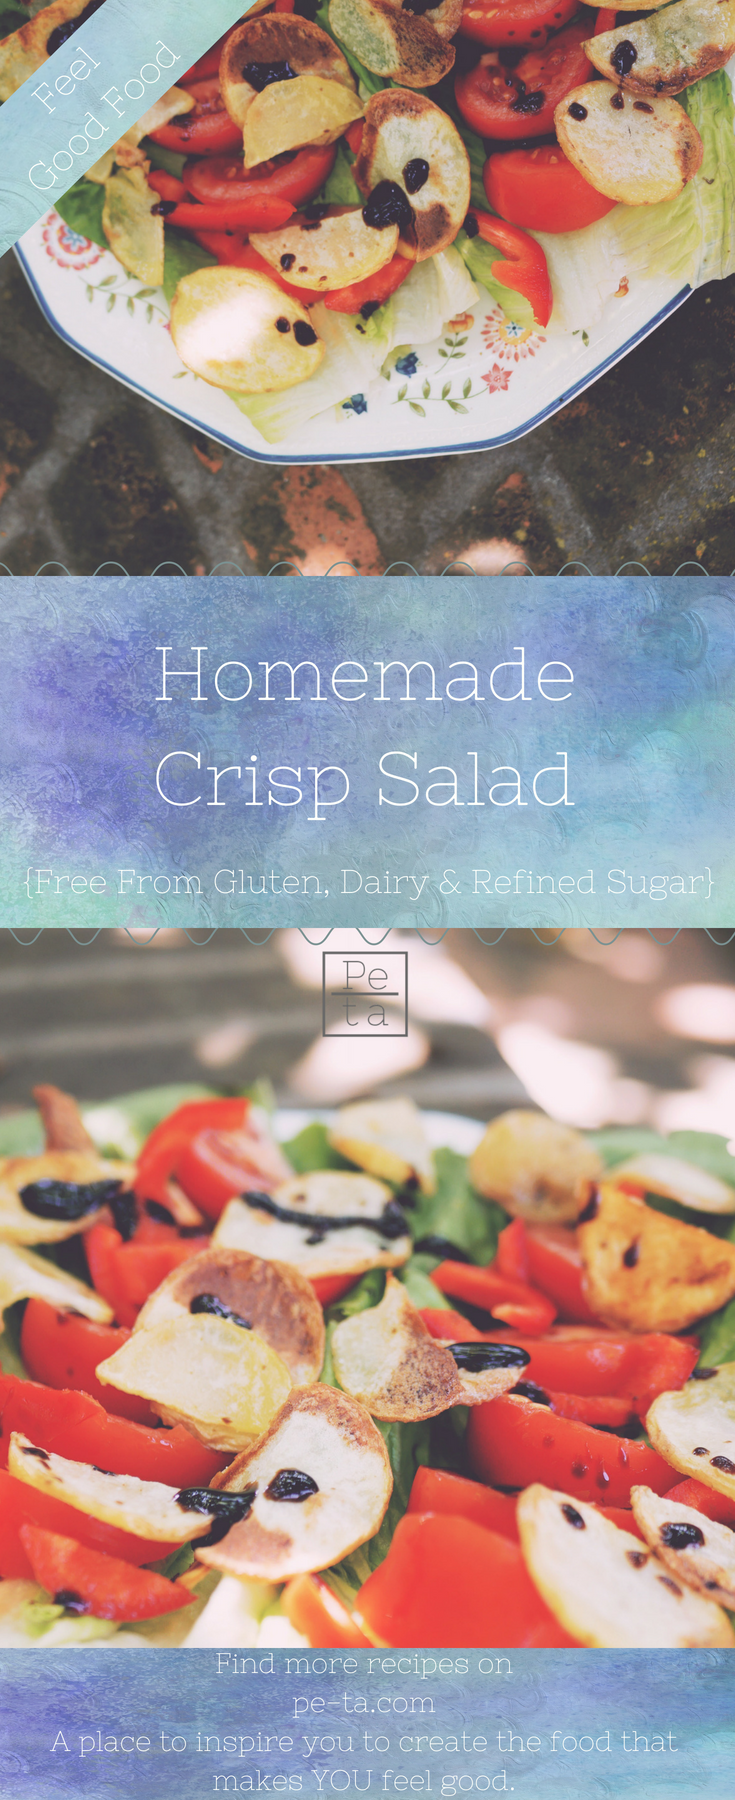 Homemade Crisp Salad - A Simple Summer Lunch